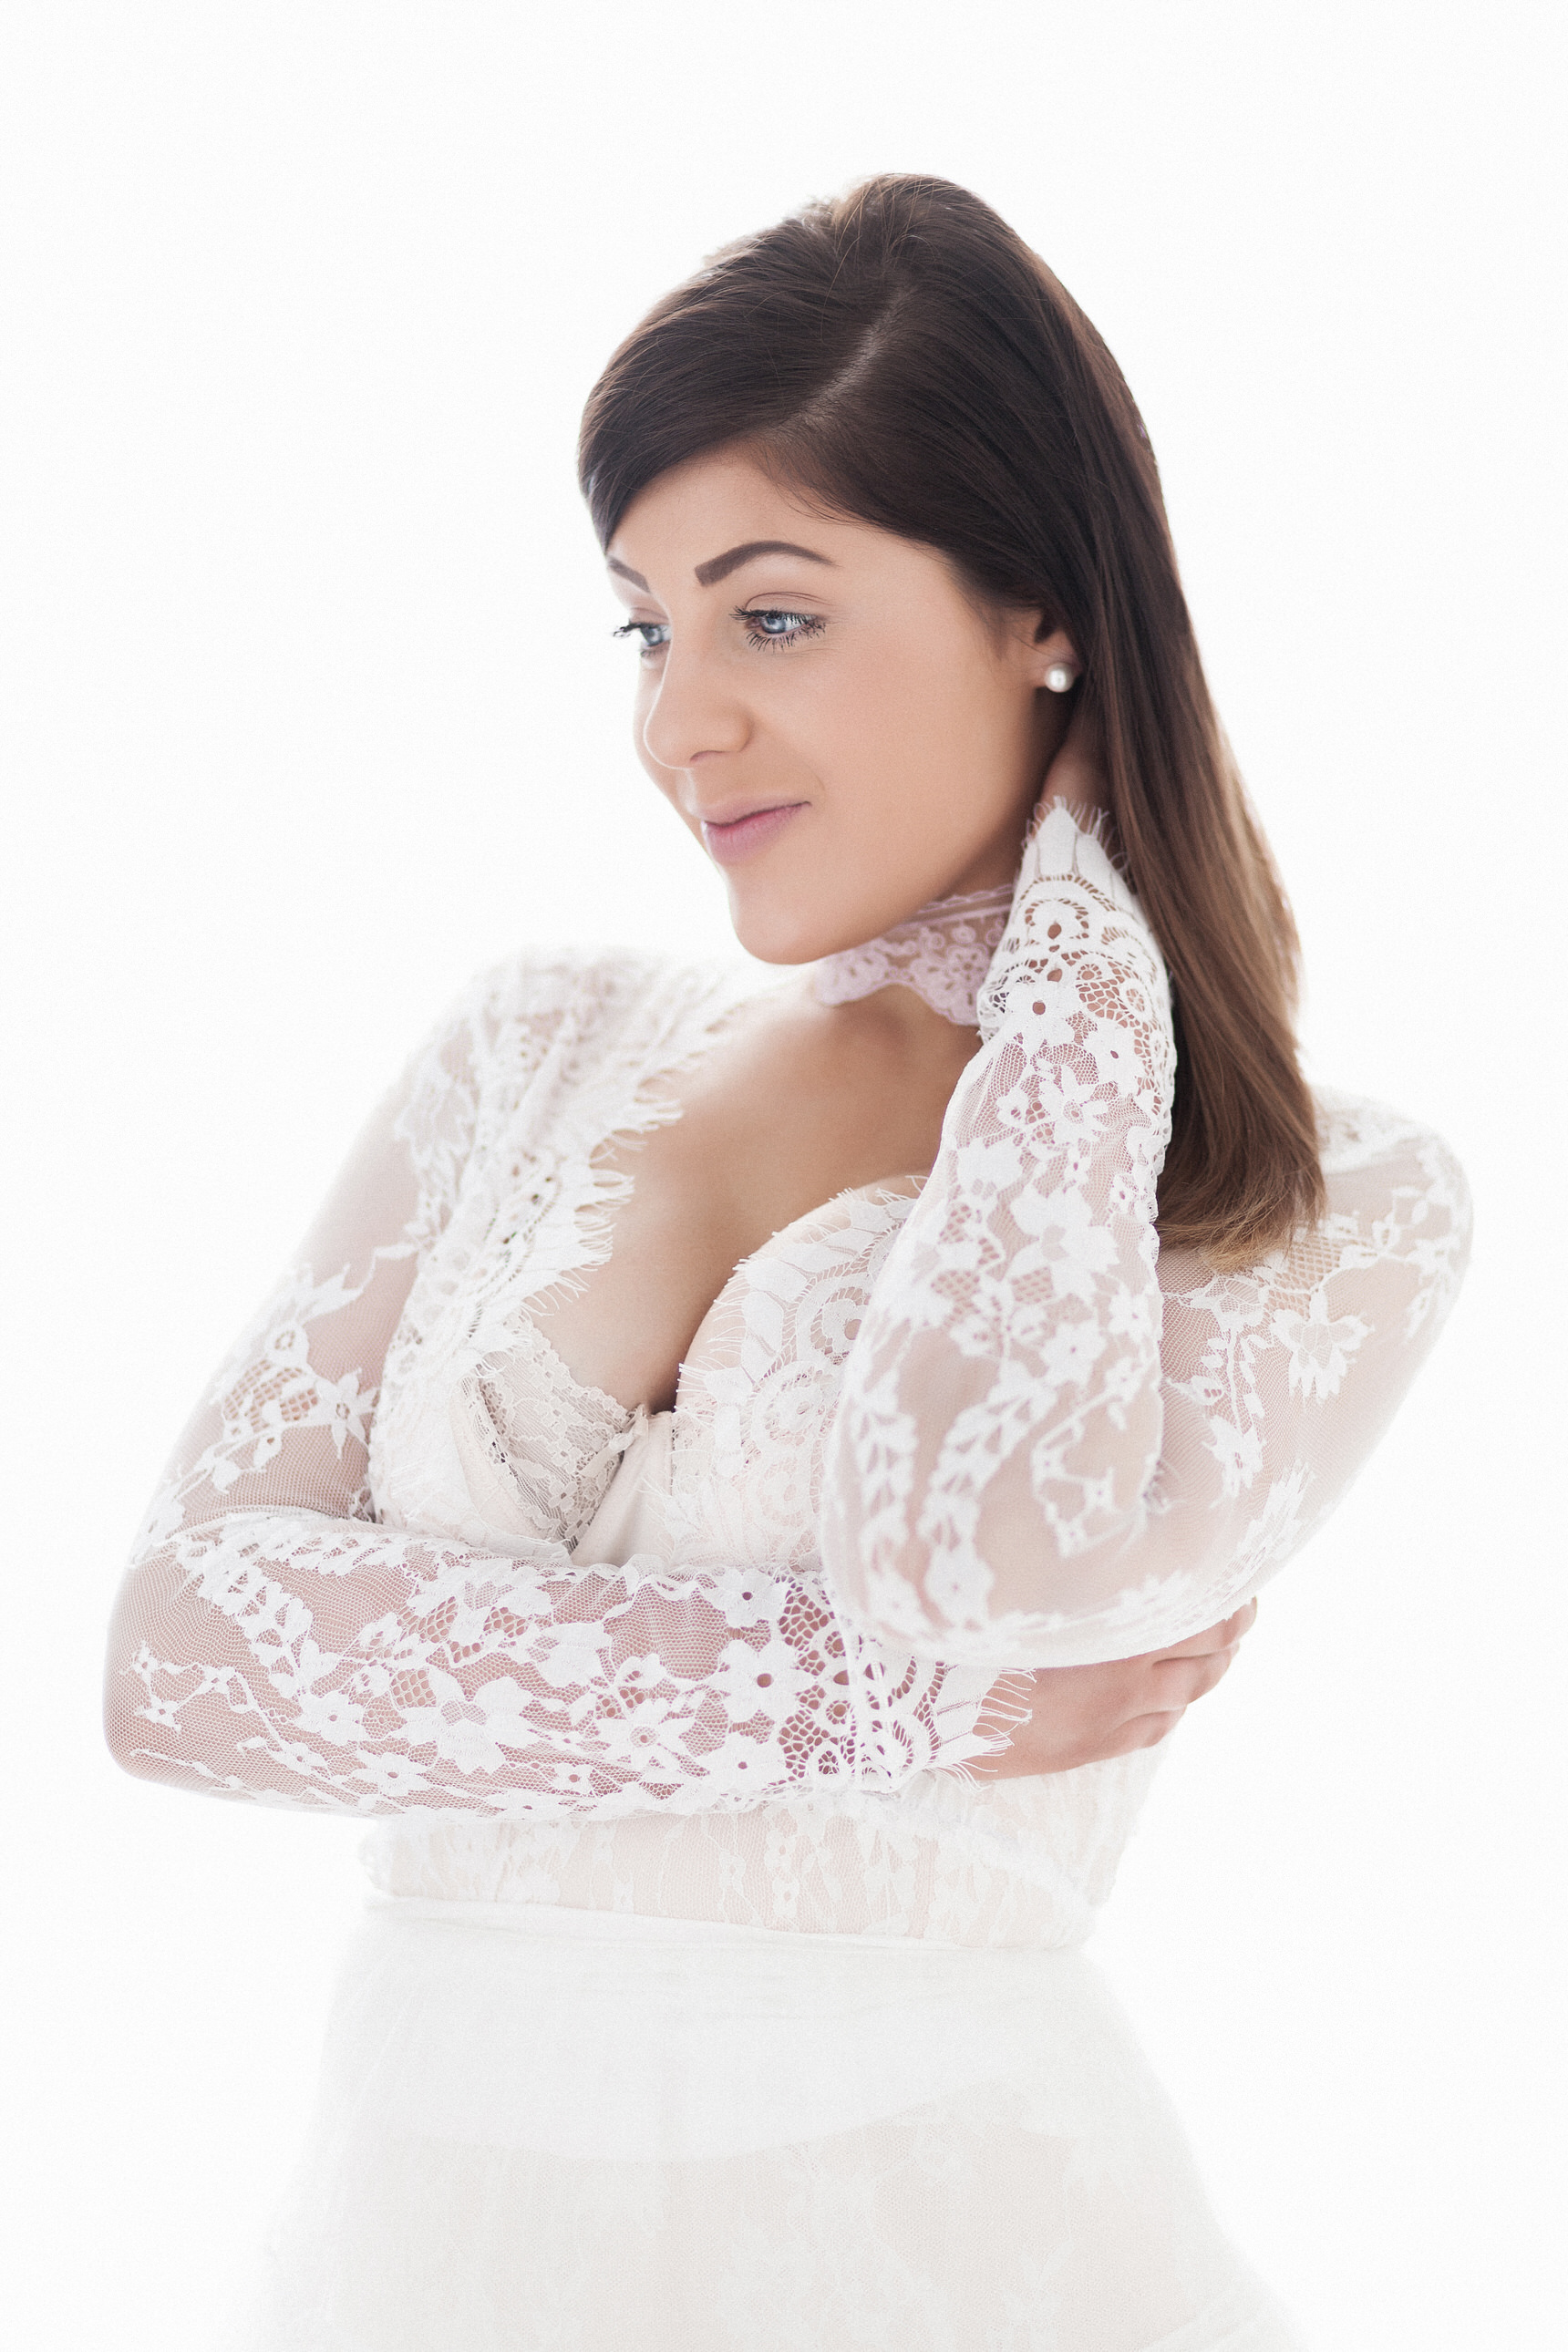 bridal boudoir image white dress and white backgroundBoudoir Photographer Lancashire